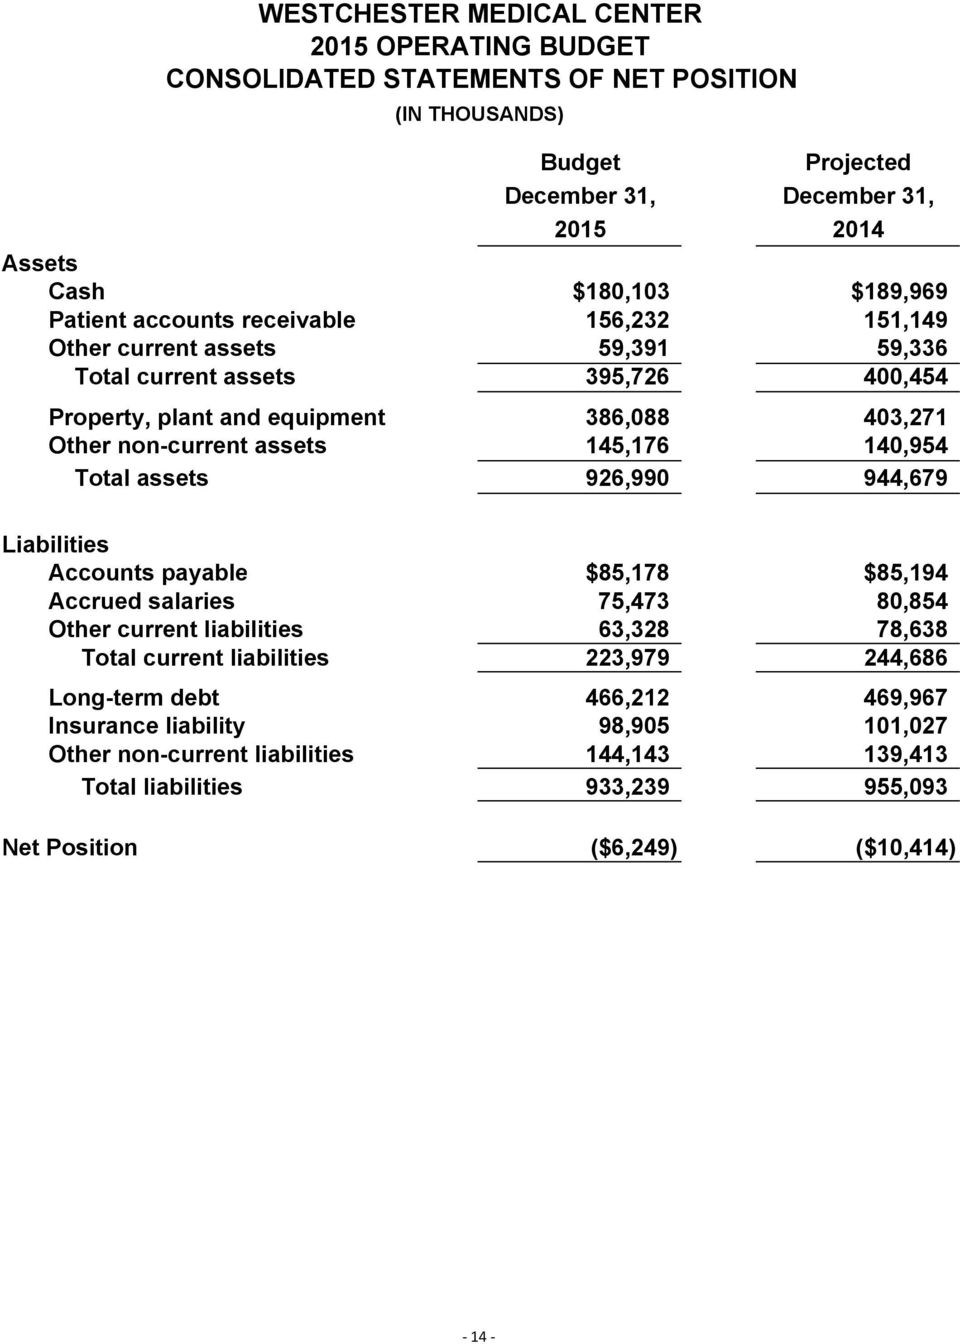 145,176 140,954 Total assets 926,990 944,679 Liabilities Accounts payable $85,178 $85,194 Accrued salaries 75,473 80,854 Other current liabilities 63,328 78,638 Total current liabilities